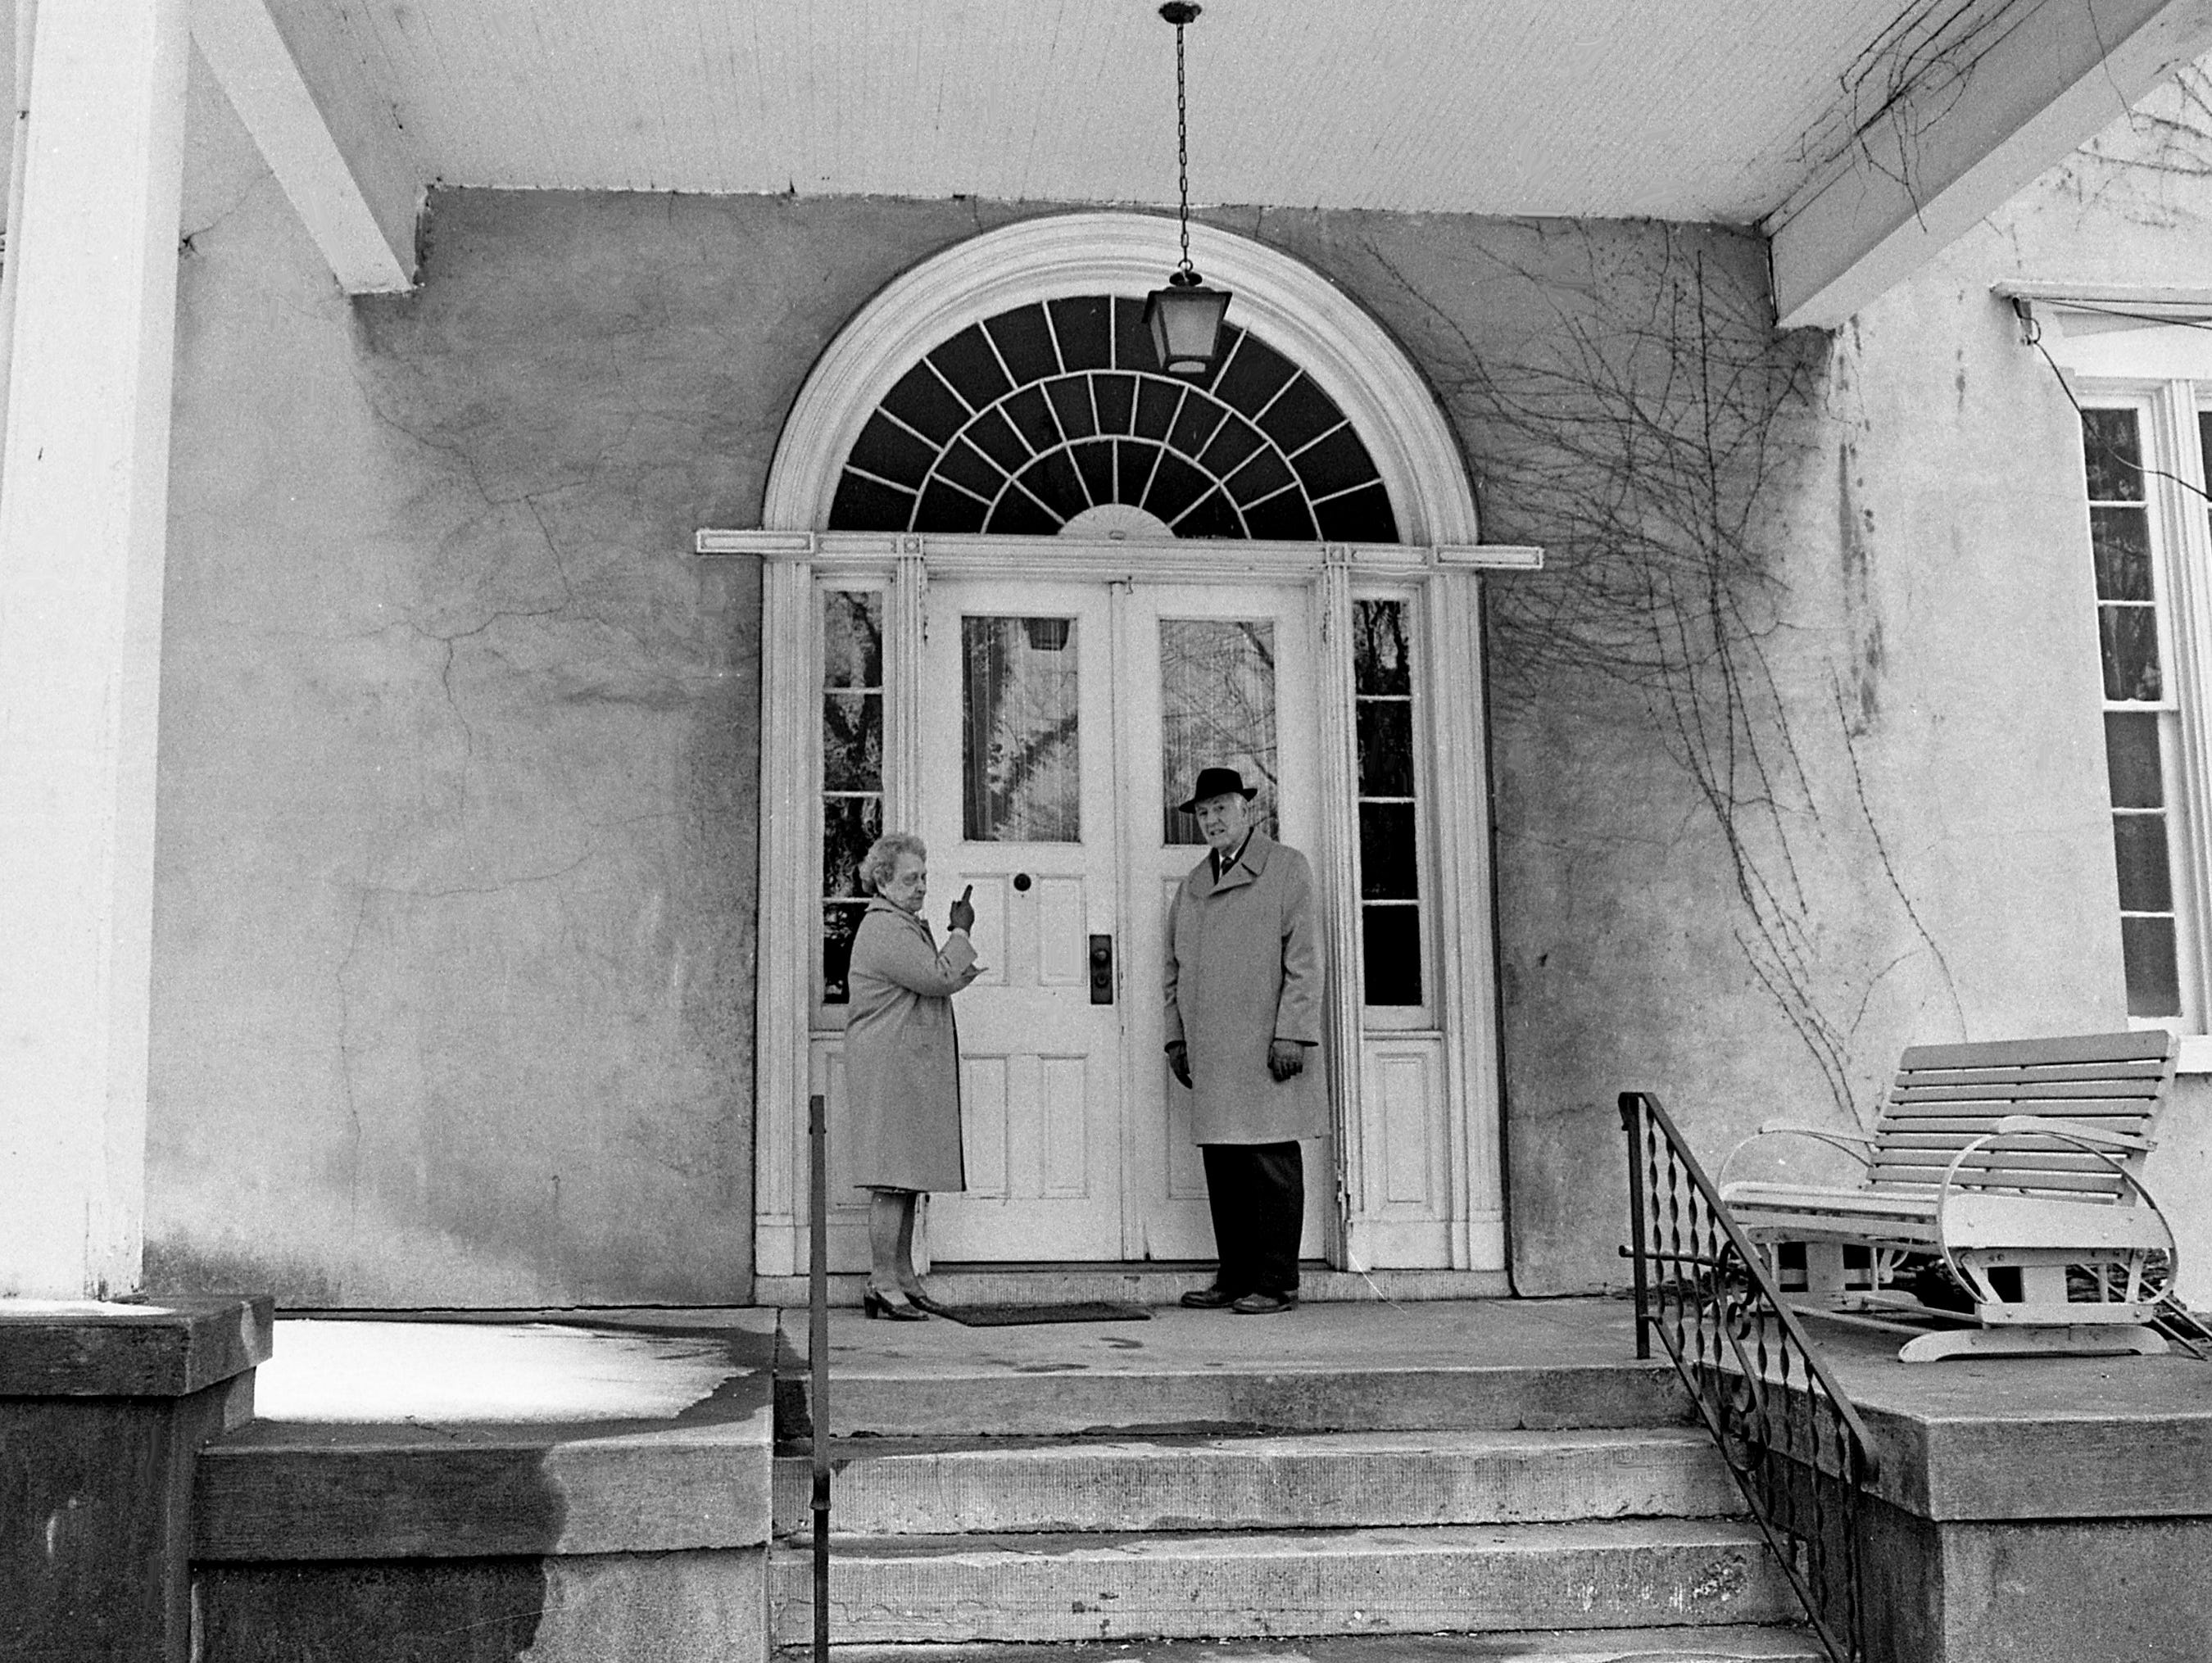 Mrs. Howard A. Moore, left, owner of the Woodlawn, points out the distinctive architectural feature of the huge fanlight over the original entrance to Terry Hart on Feb. 20, 1979. Hart is a descendant of the original owner.